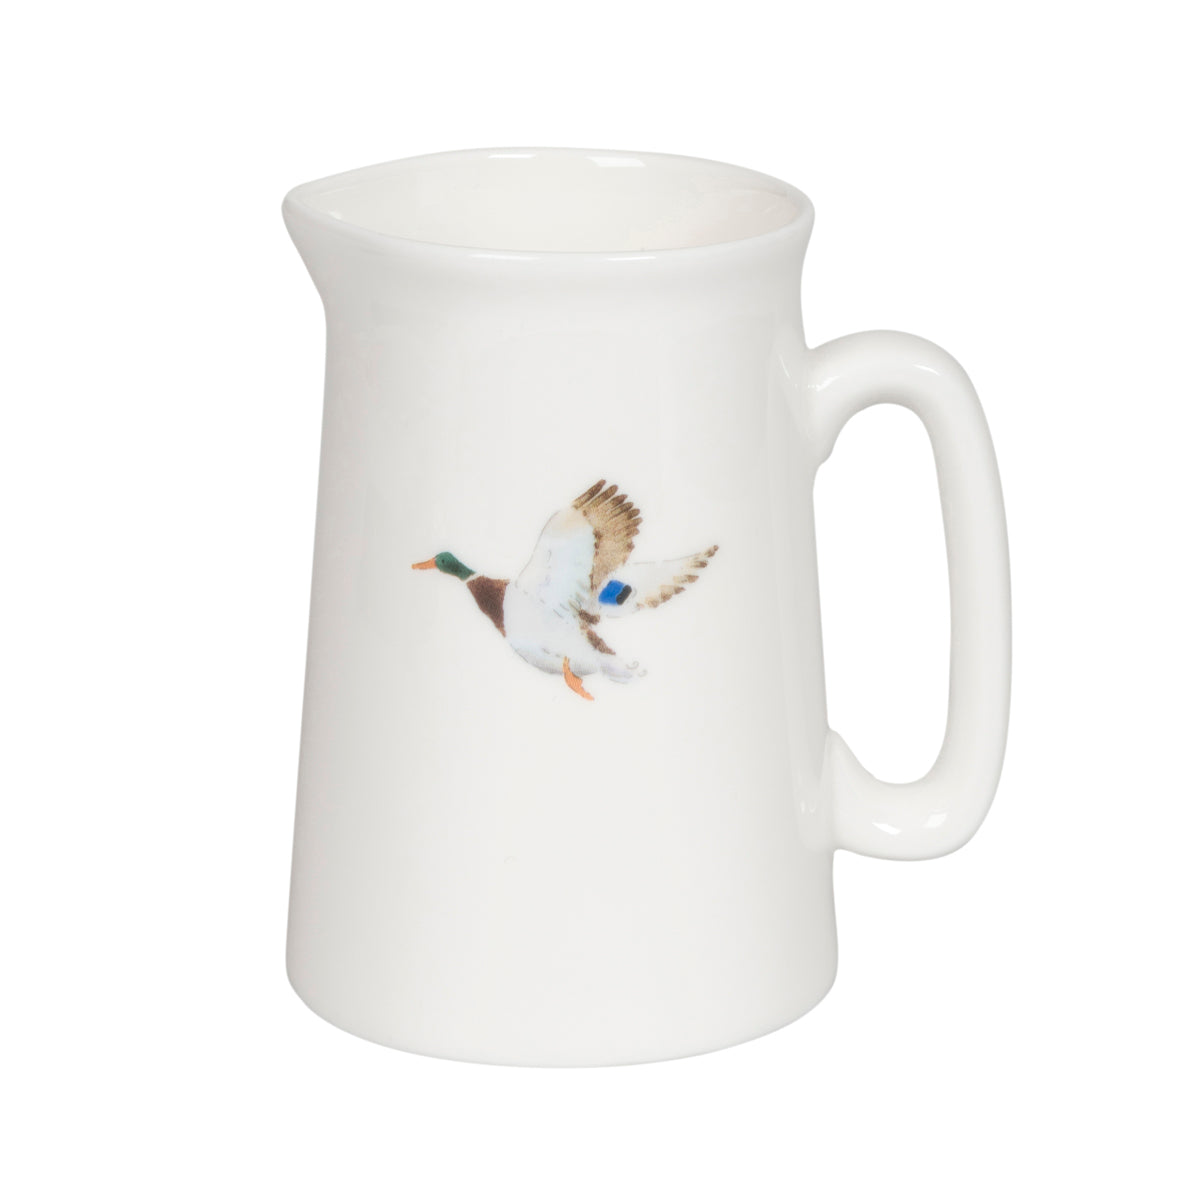 Small fine bone china jug with duck illustration